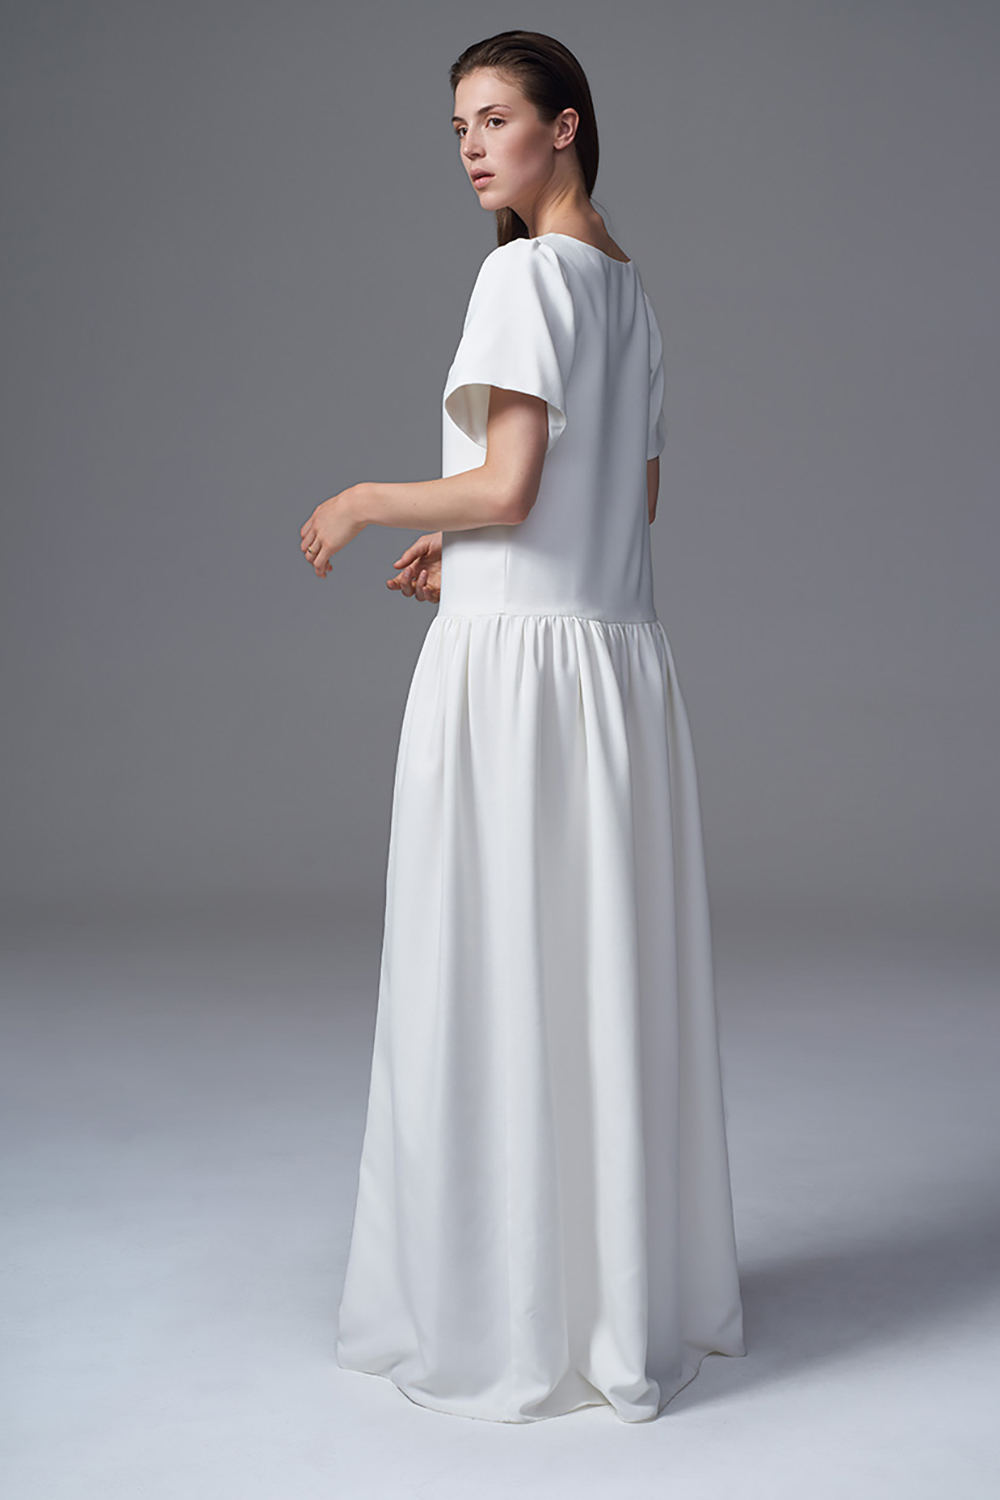 THE STELLA MATT CREPE BOXY DROPPED WAIST DRESS. BRIDAL WEDDING DRESS BY HALFPENNY LONDON